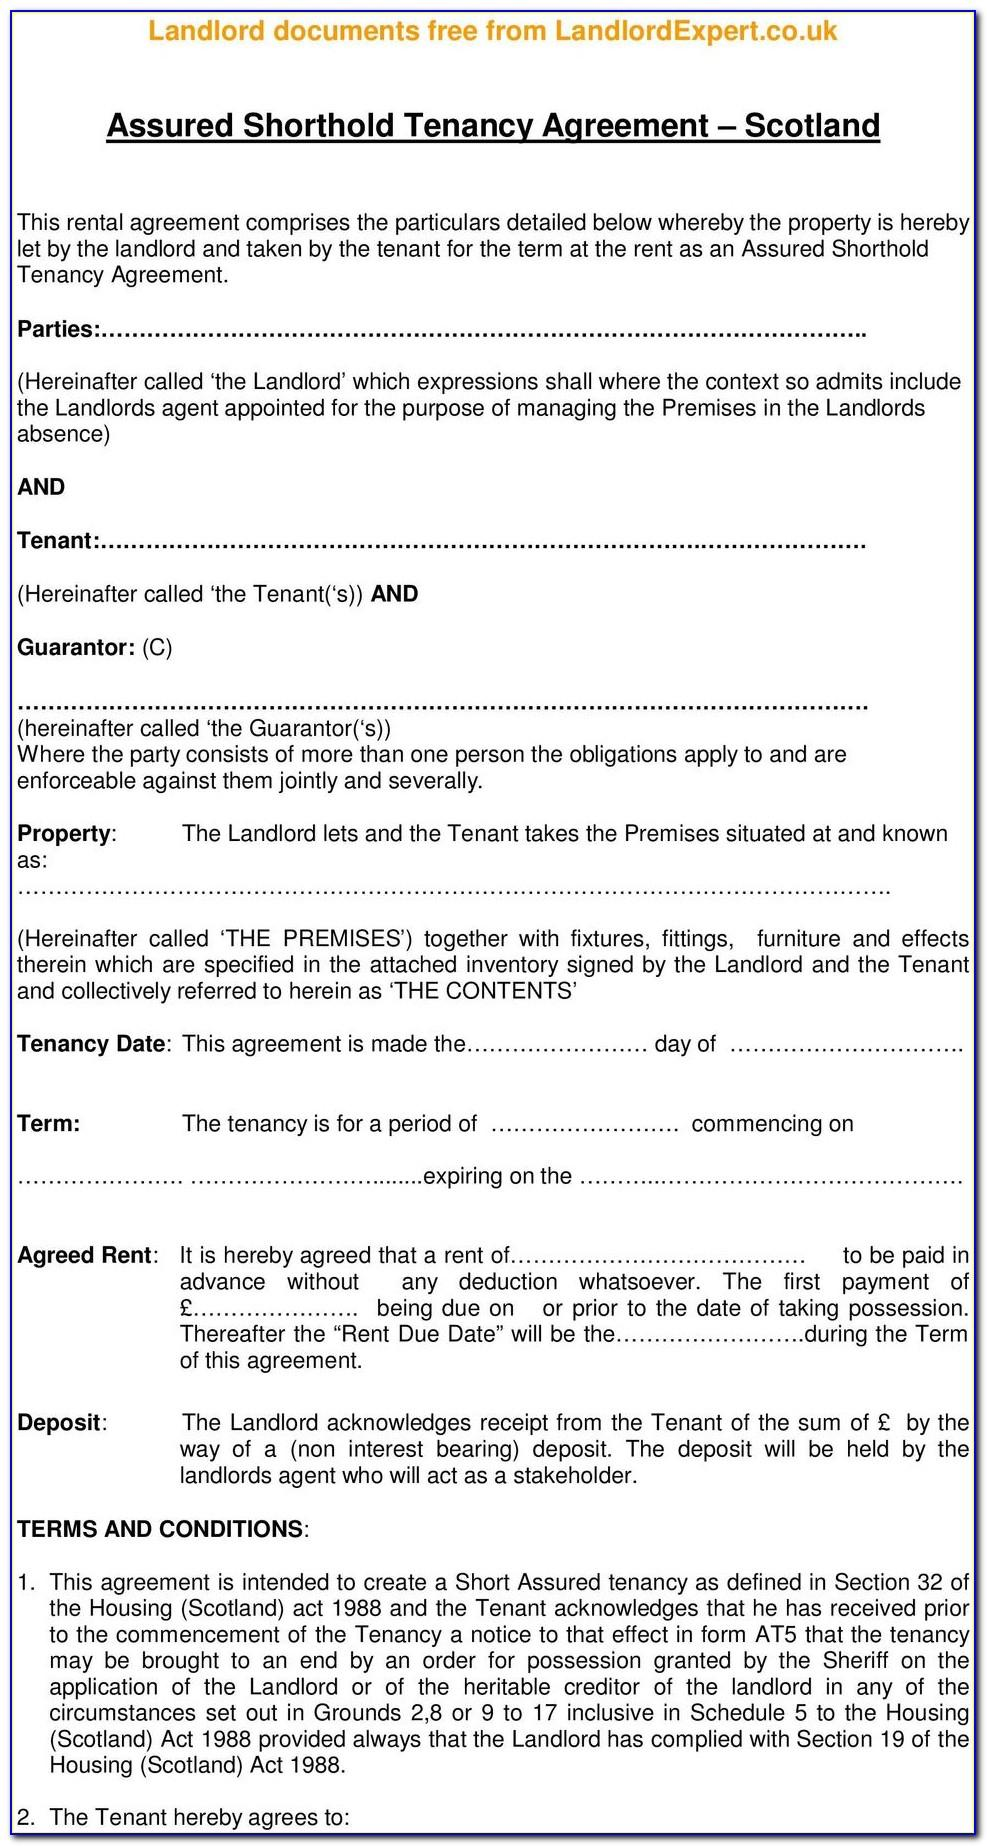 Free Assured Short Term Tenancy Agreement Template Scotland